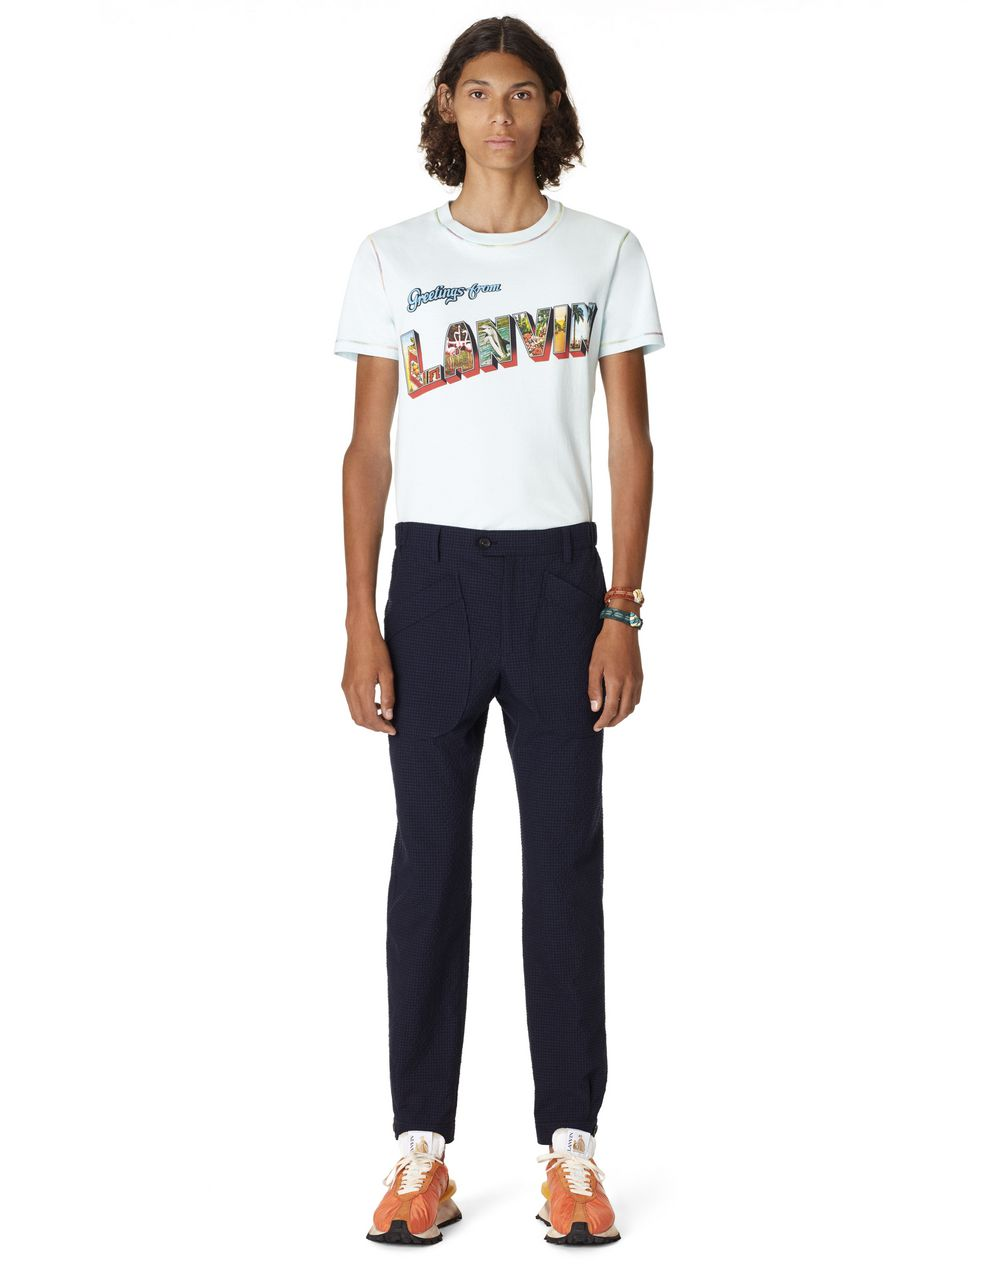 SLIM-FIT COTTON TROUSERS - Lanvin